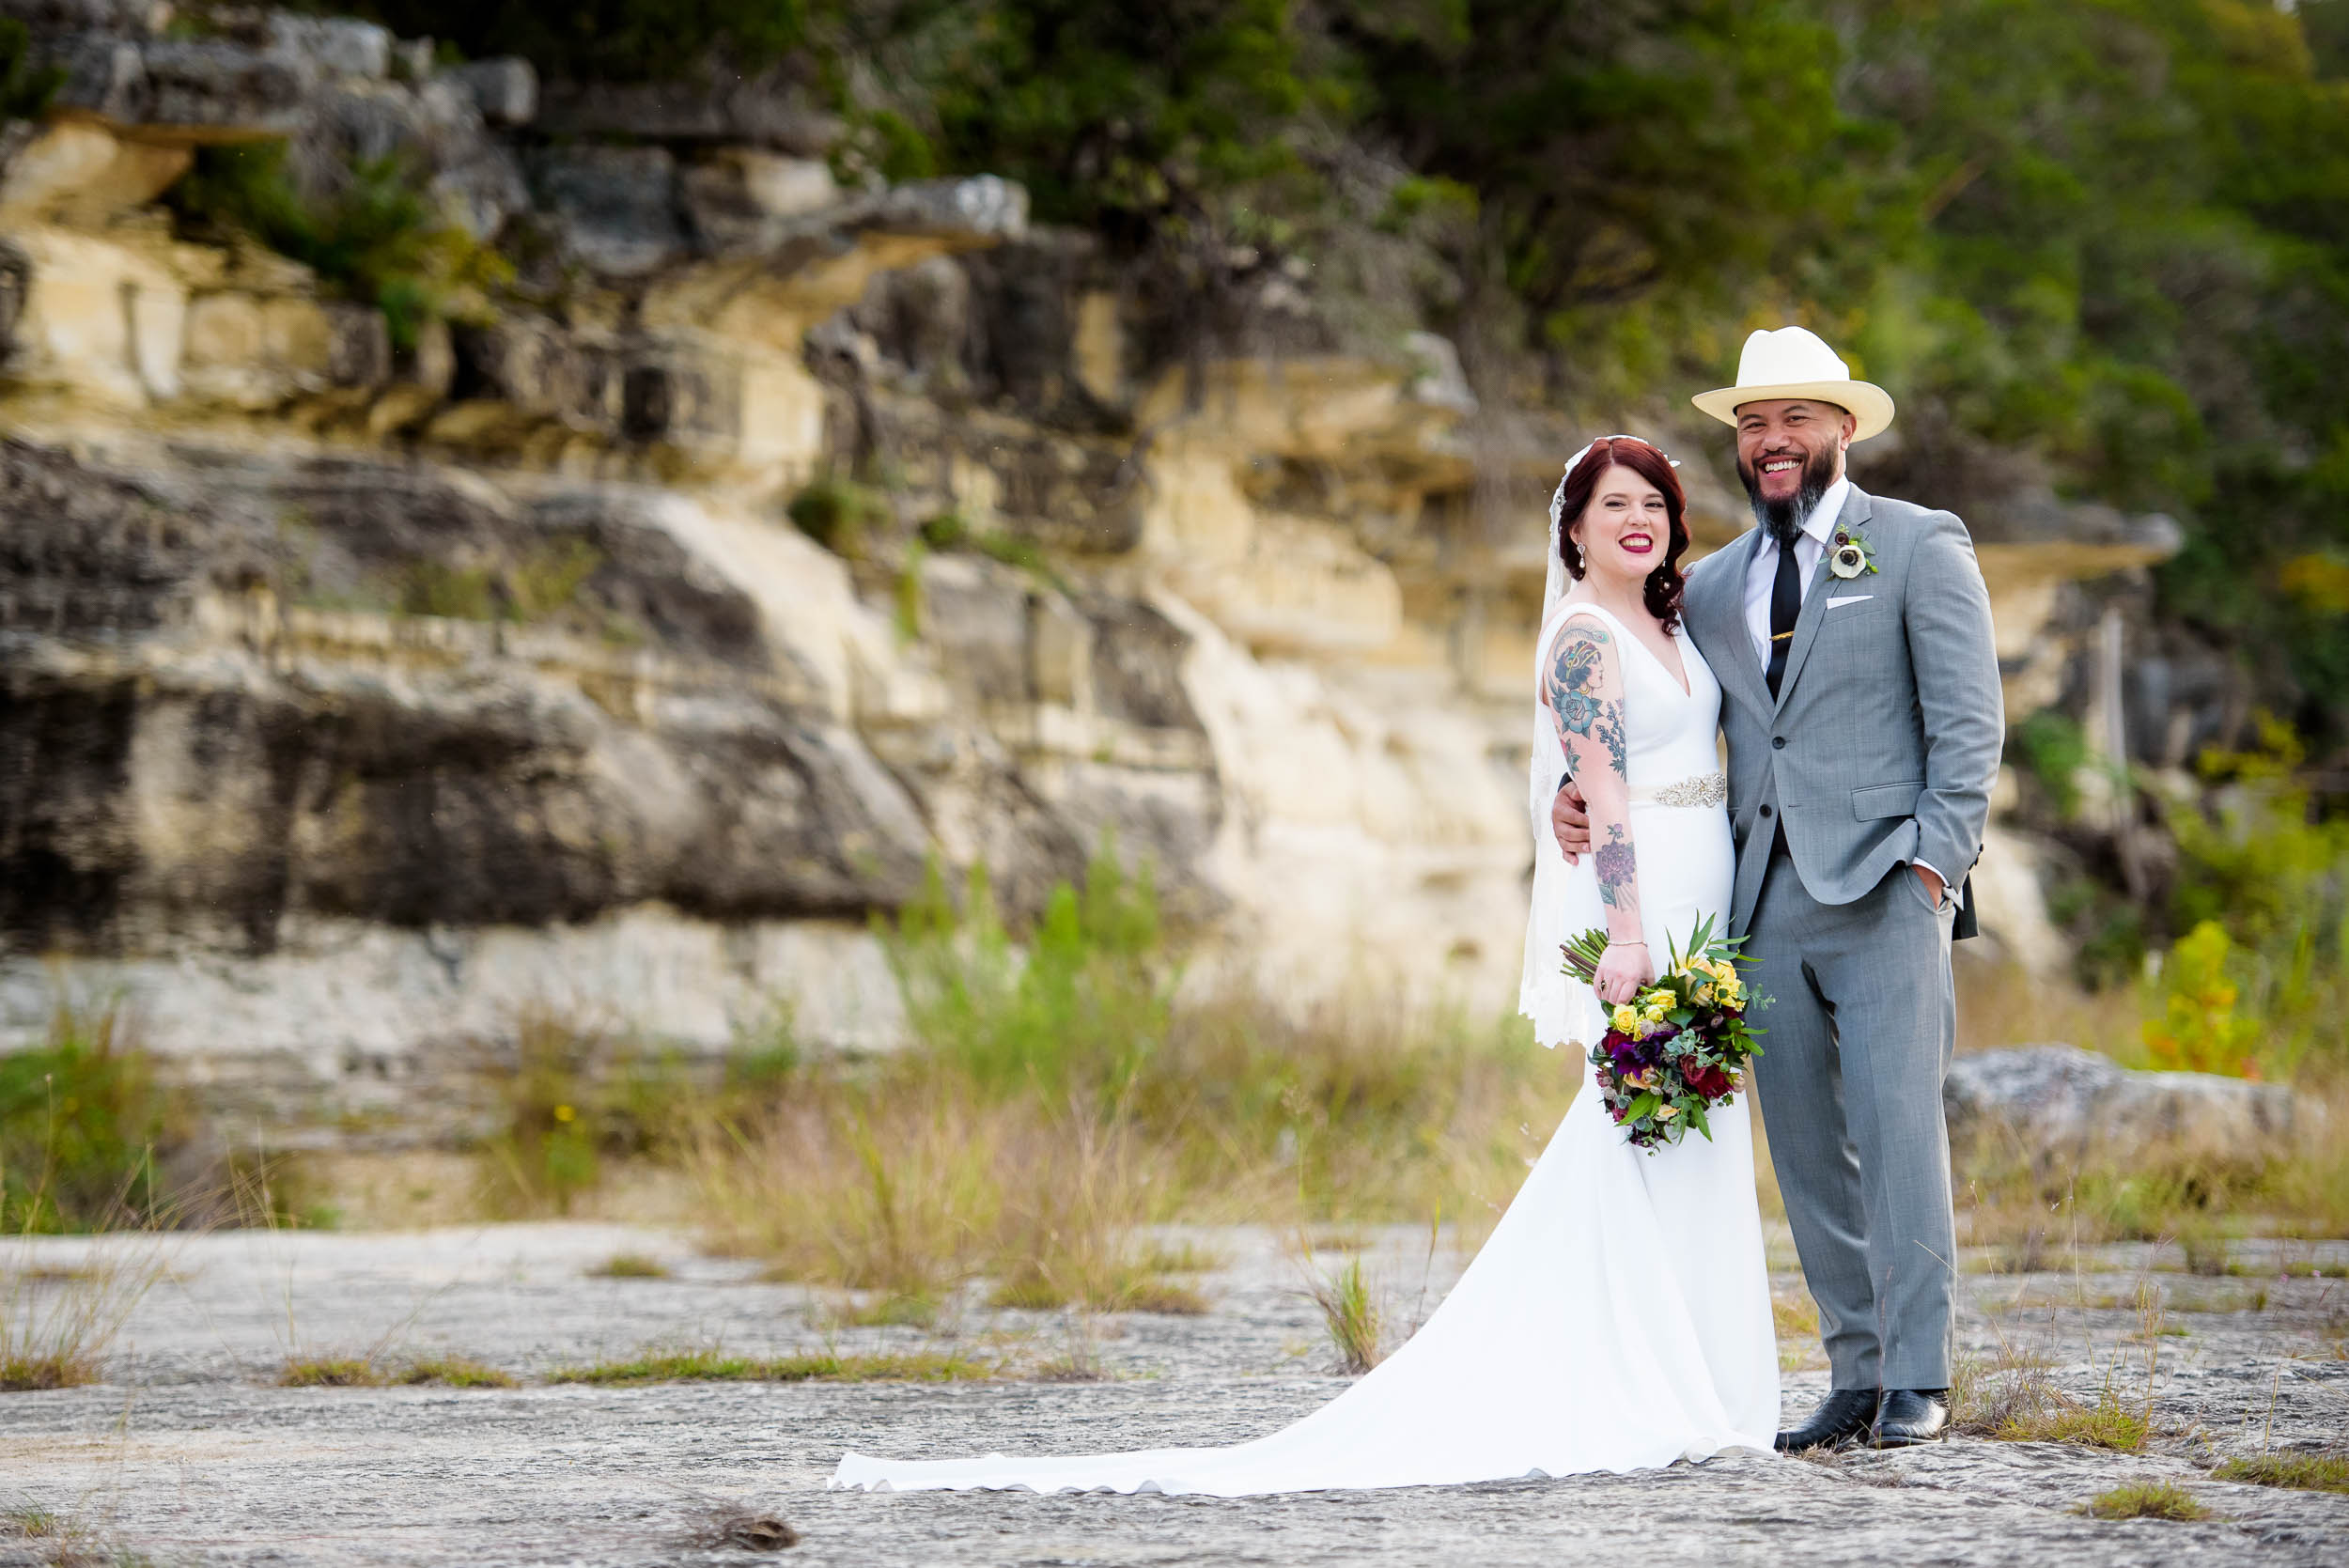 Bride and groom portrait during a Montesino Ranch wedding Austin, Texas.